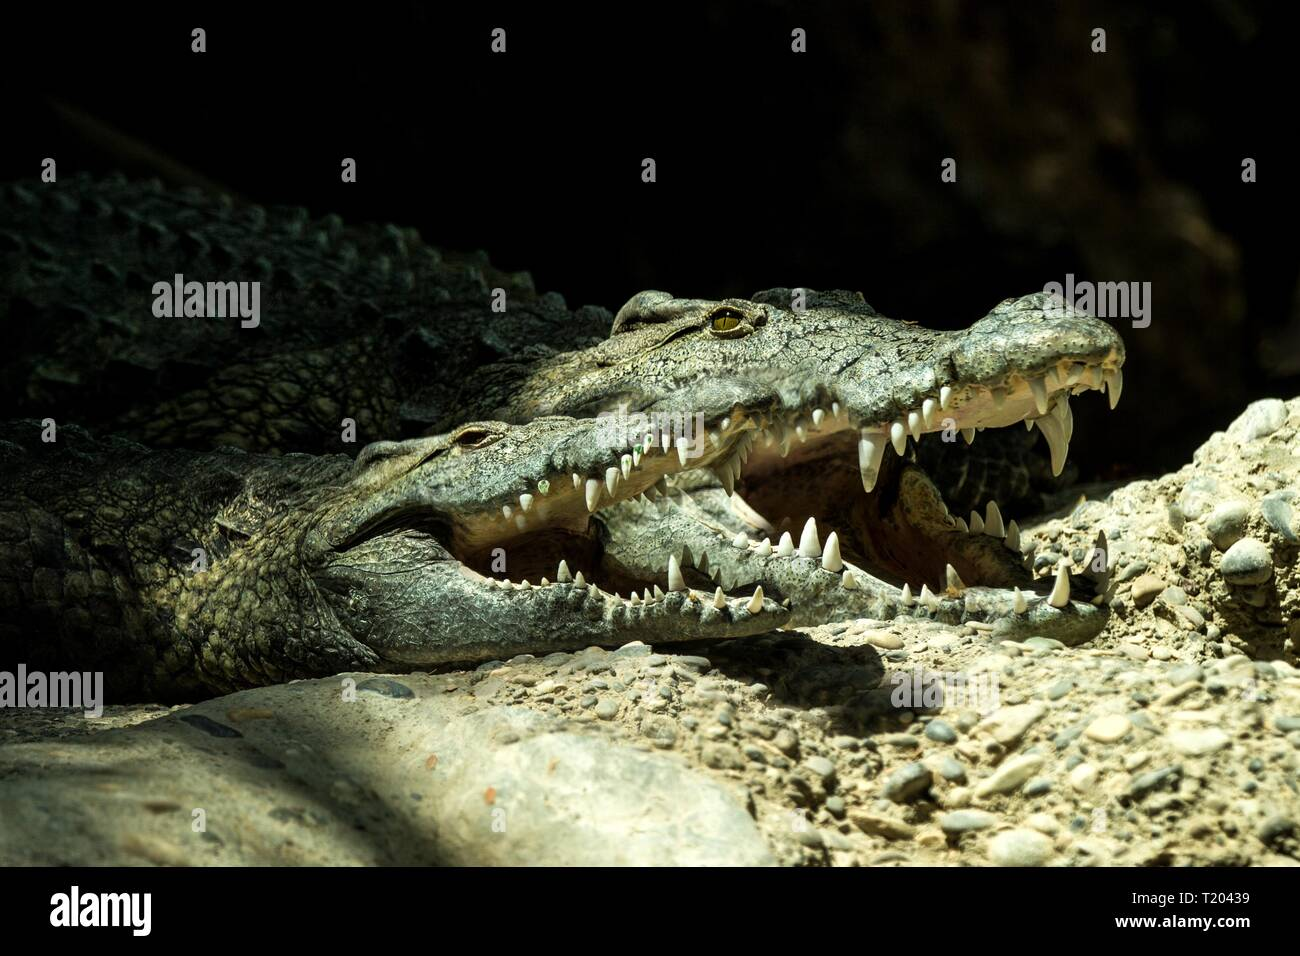 The Nile crocodile (Crocodylus niloticus) is an African crocodile, the largest freshwater predator in Africa, Two Nile crocodiles, lie together. In Ba - Stock Image